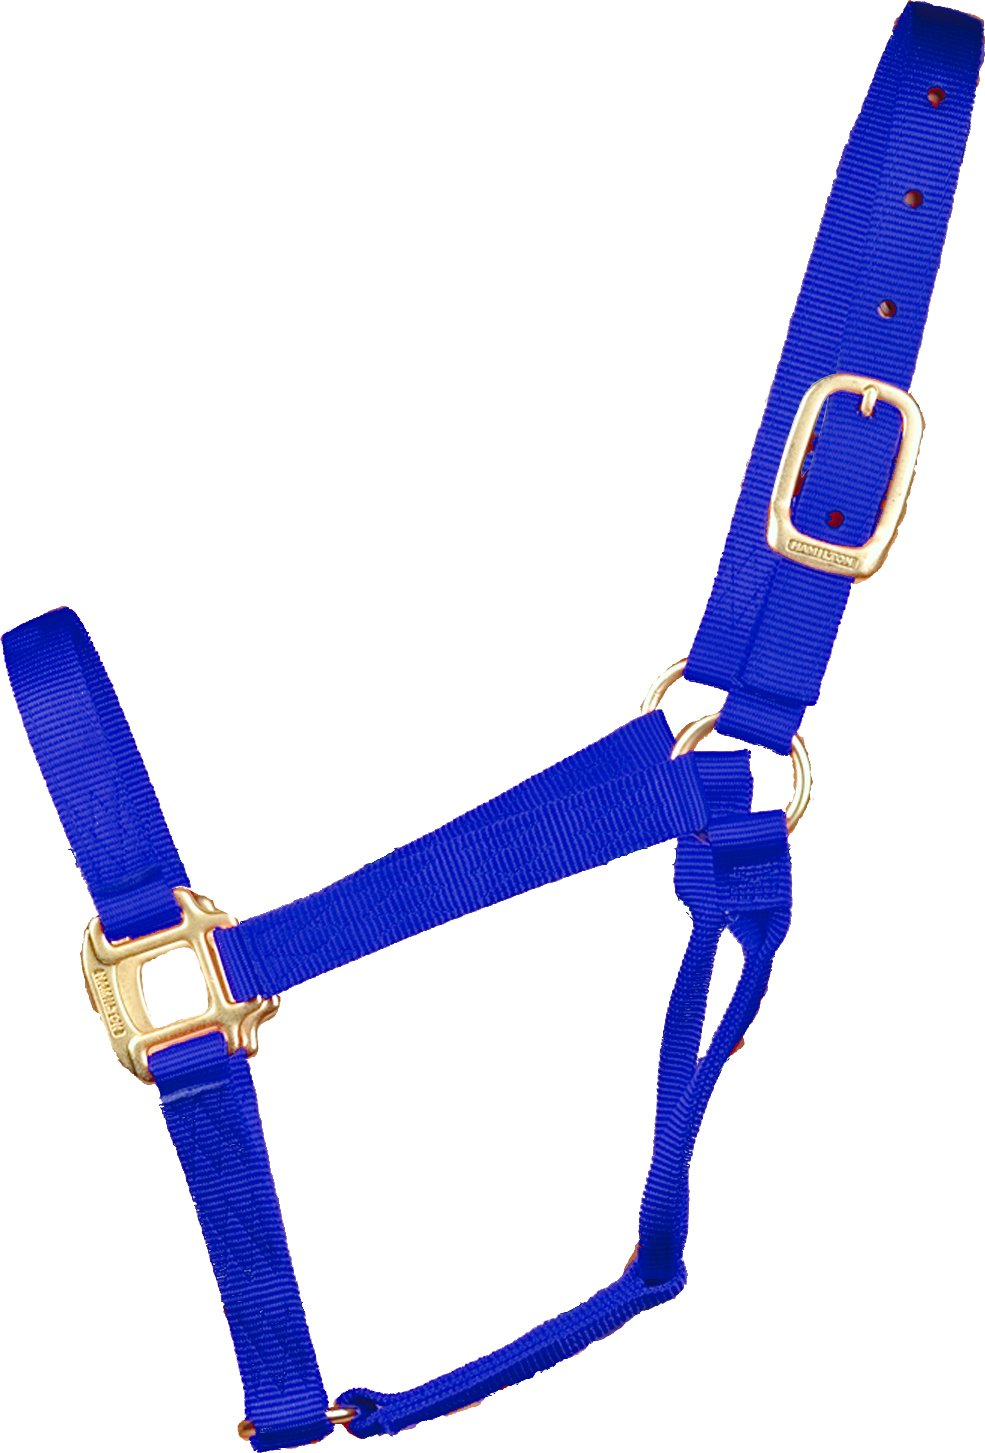 Hamilton 1-Inch Nylon Quality Halter for 500 to 800-Pound Horse, Small, bluee